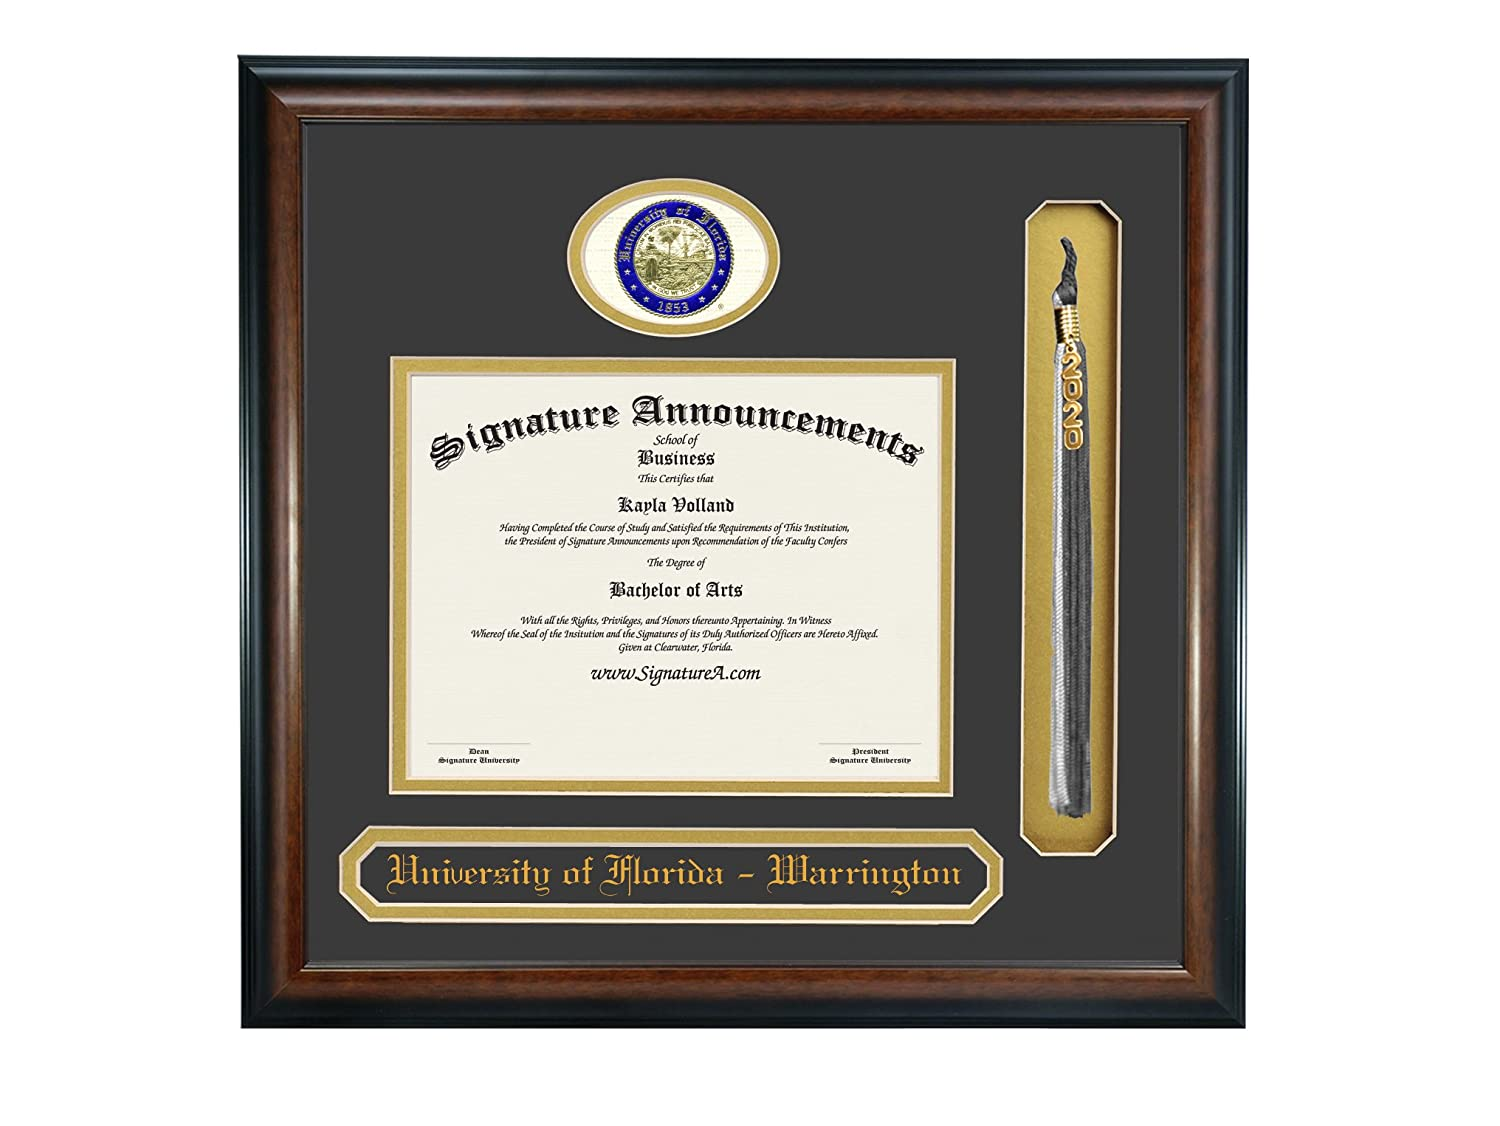 Signature Announcements University of Florida Warrington College of Business Undergraduate Sculpted Foil Seal Name /& Tassel Graduation Diploma Frame 23 x 24 Matte Mahogany